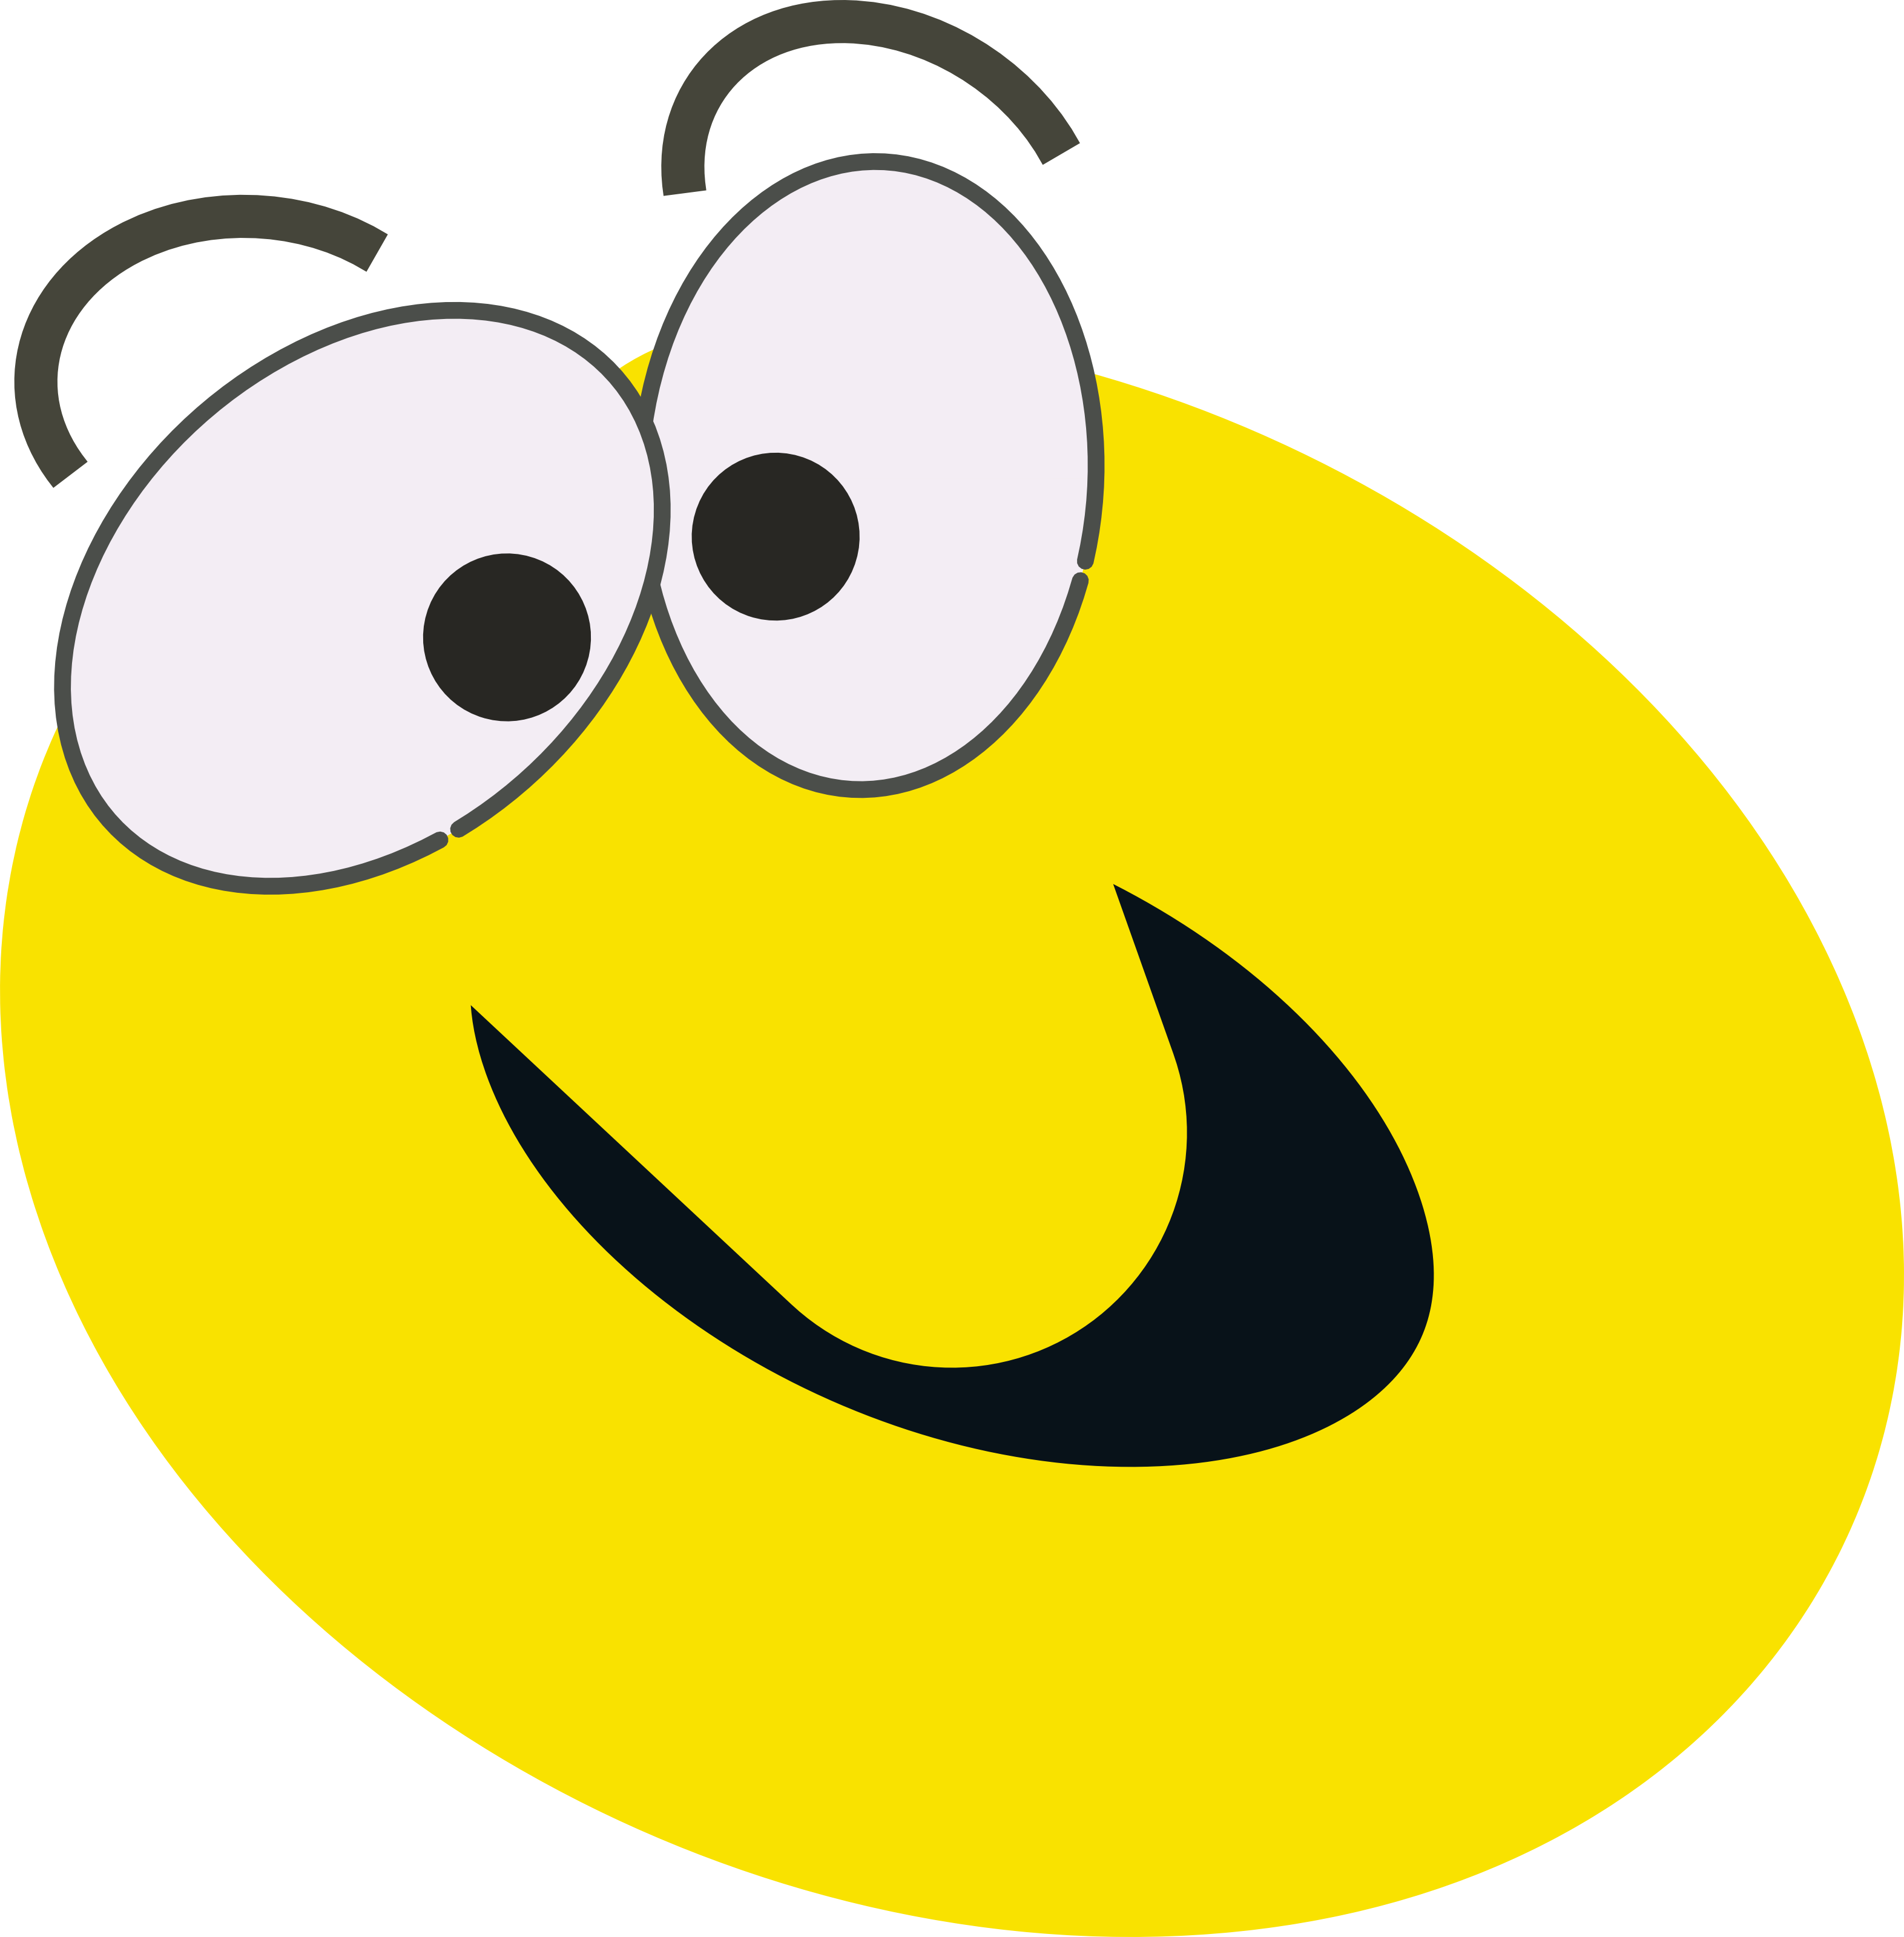 3145x3200 Smiley Face Clip Art Animated Free Clipart Images